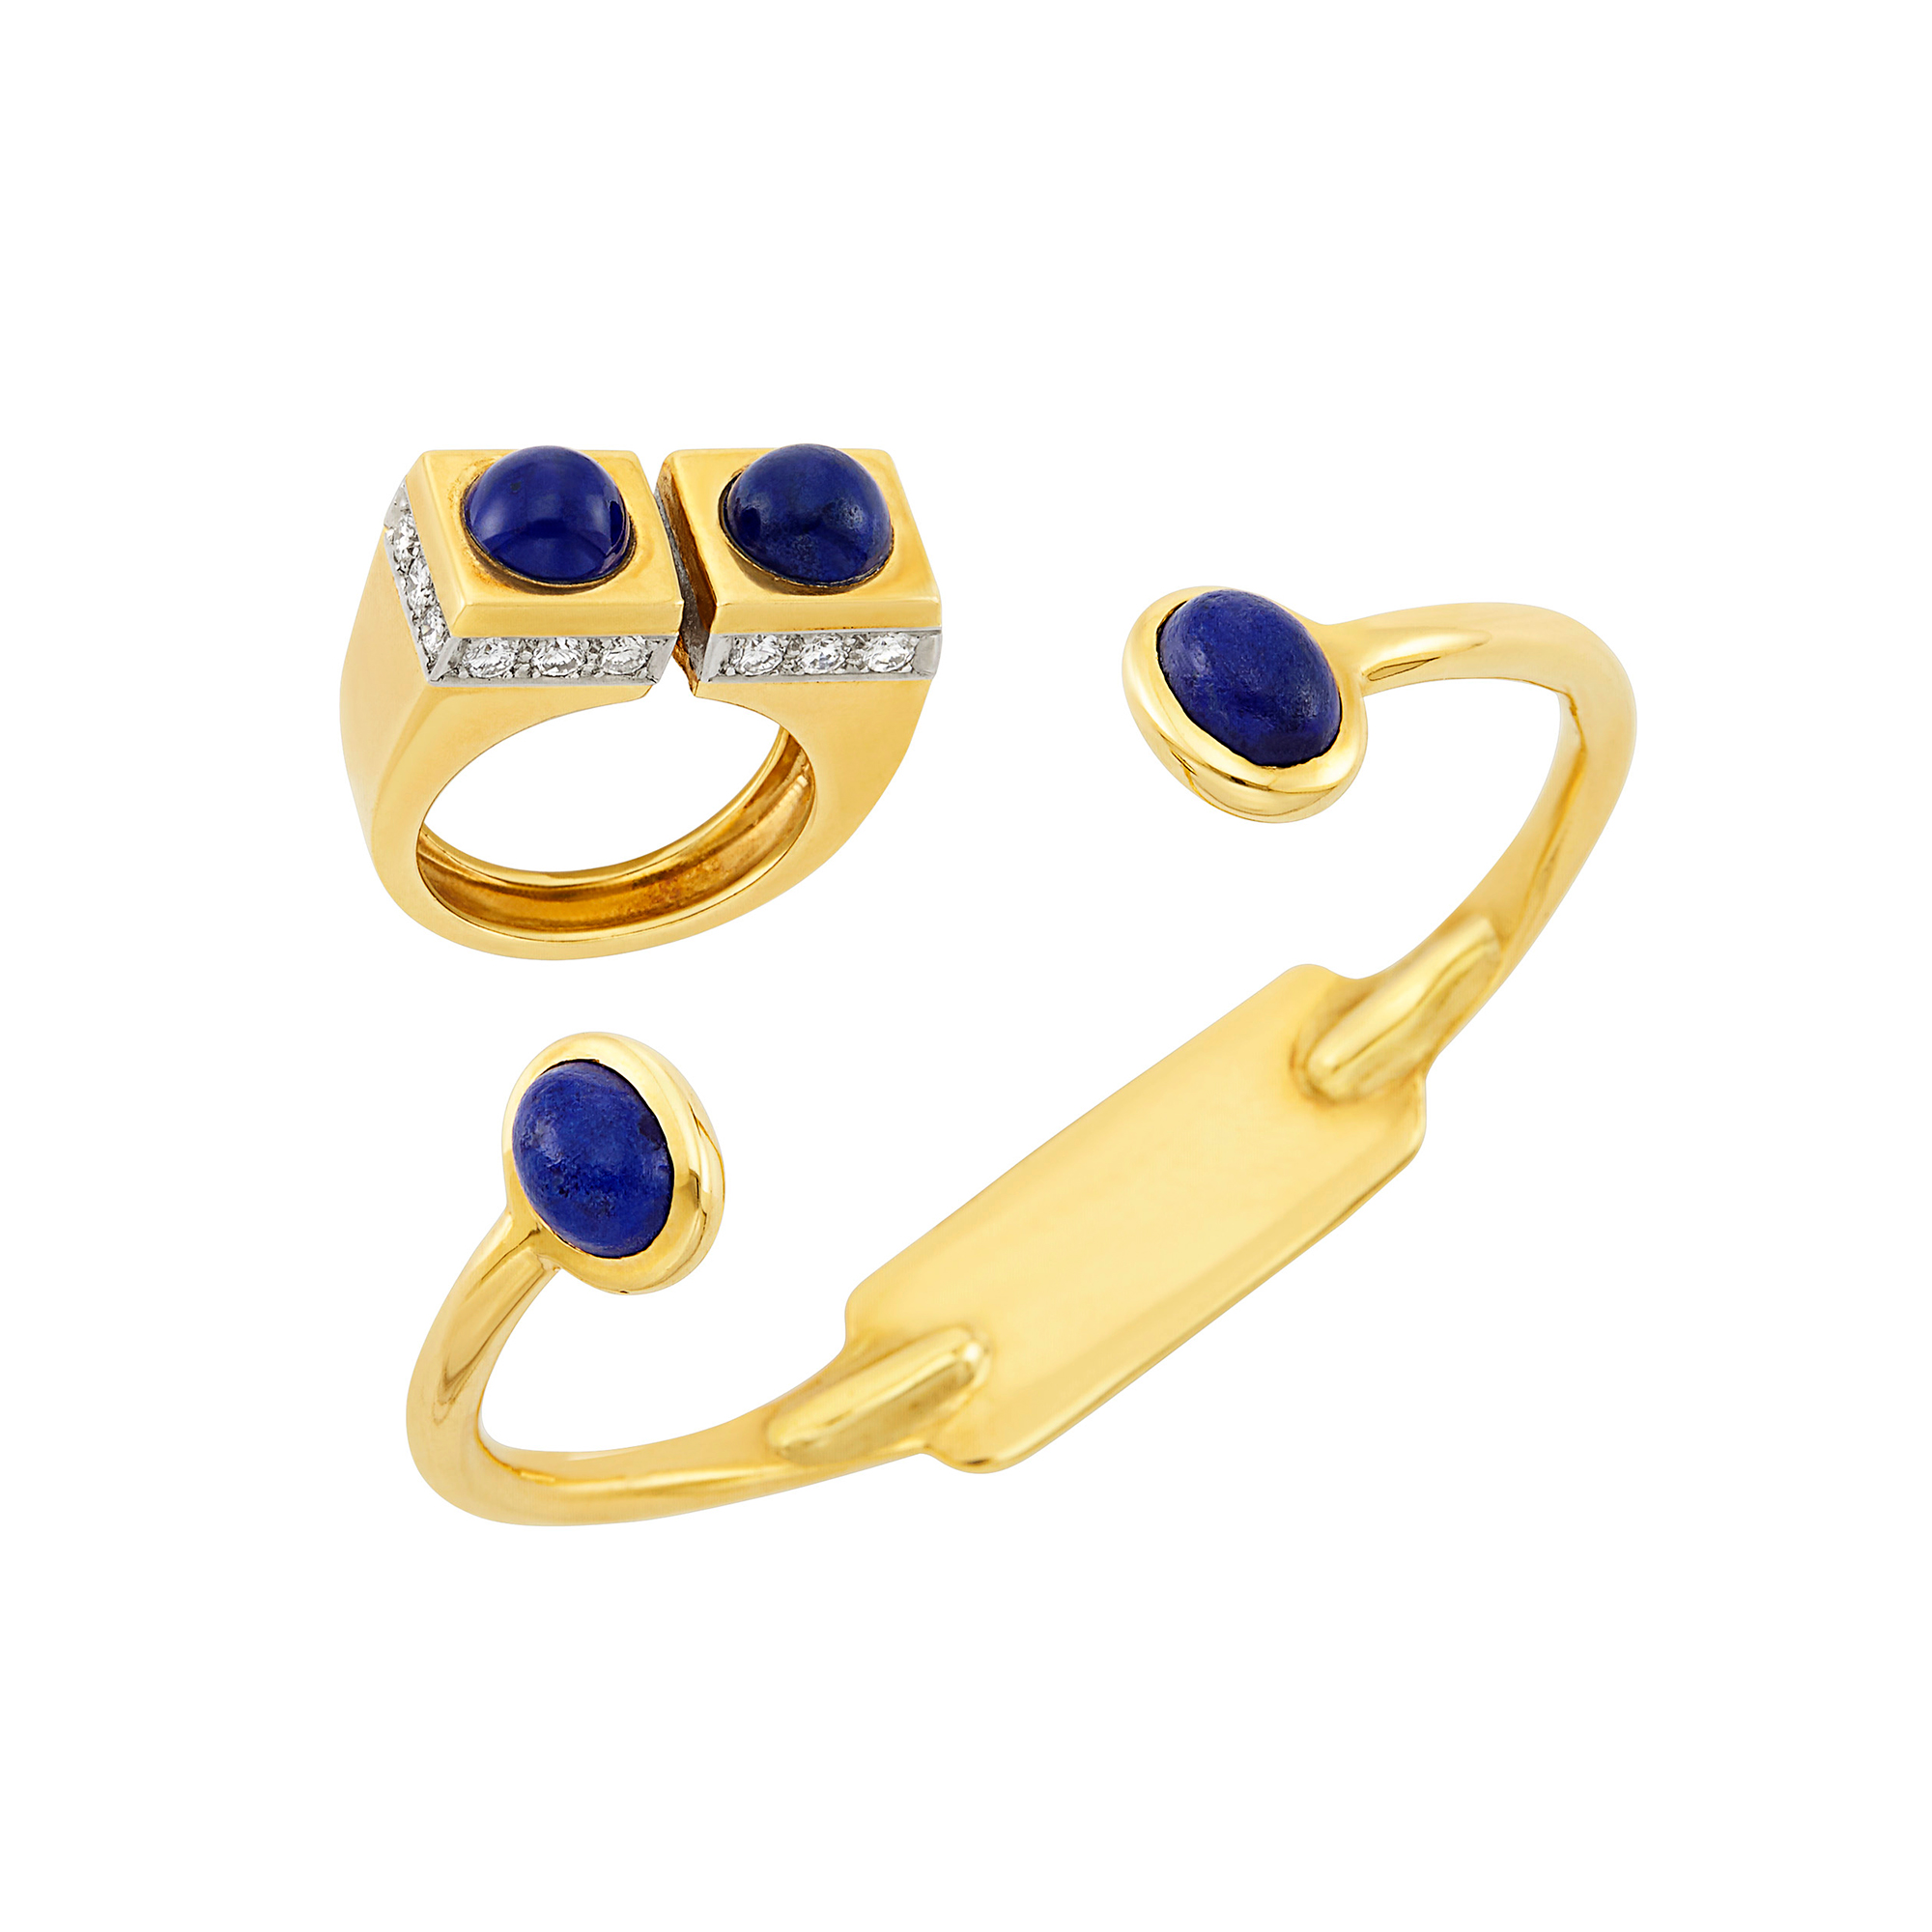 Lot image - Gold and Lapis Bangle Bracelet, Cartier, and Gold, Lapis and Diamond Ring, Tiffany & Co.